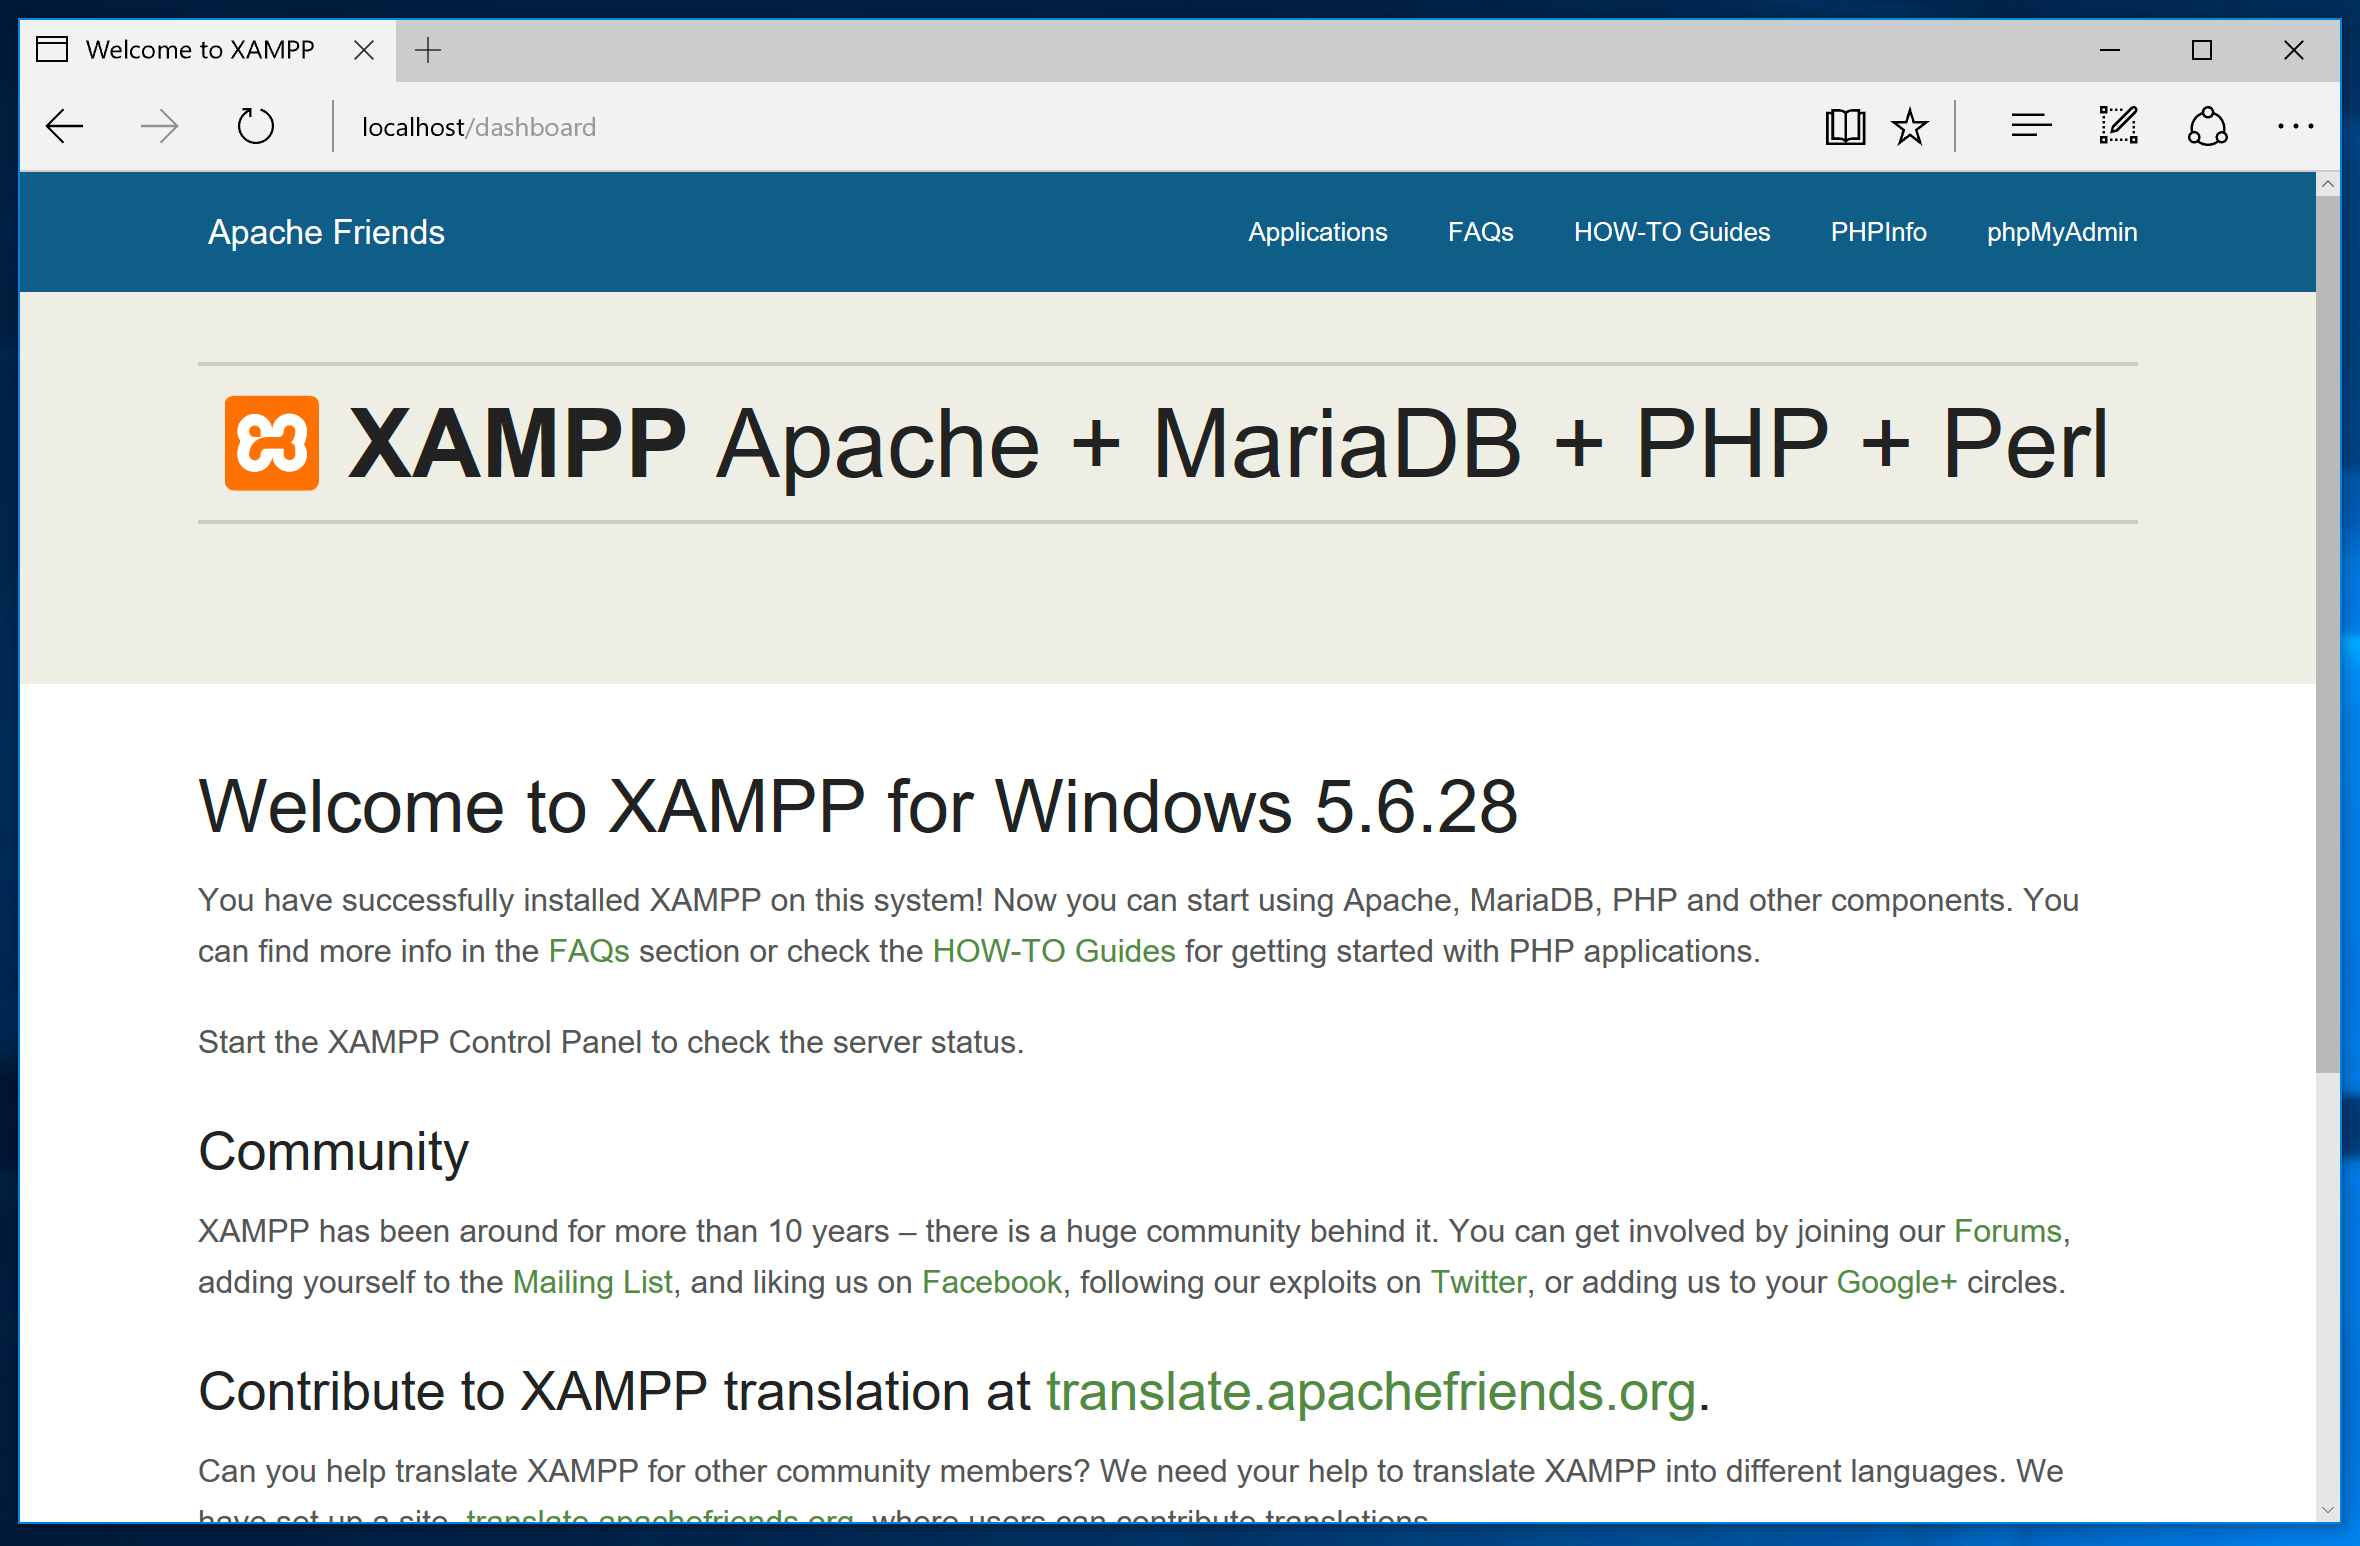 XAMPP Start Page for Windows